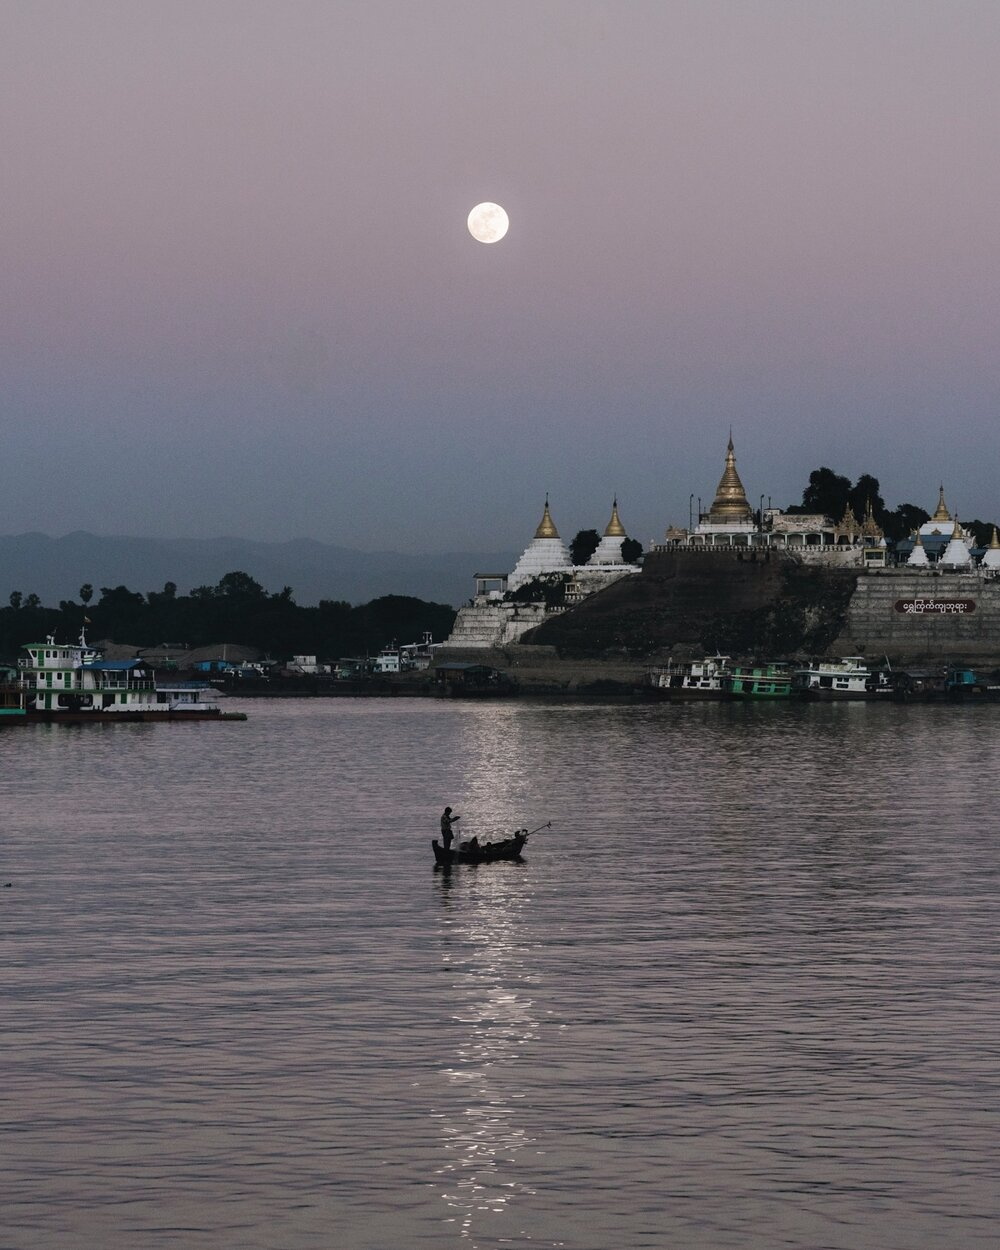 A full moon rises on the Irrawaddy River.